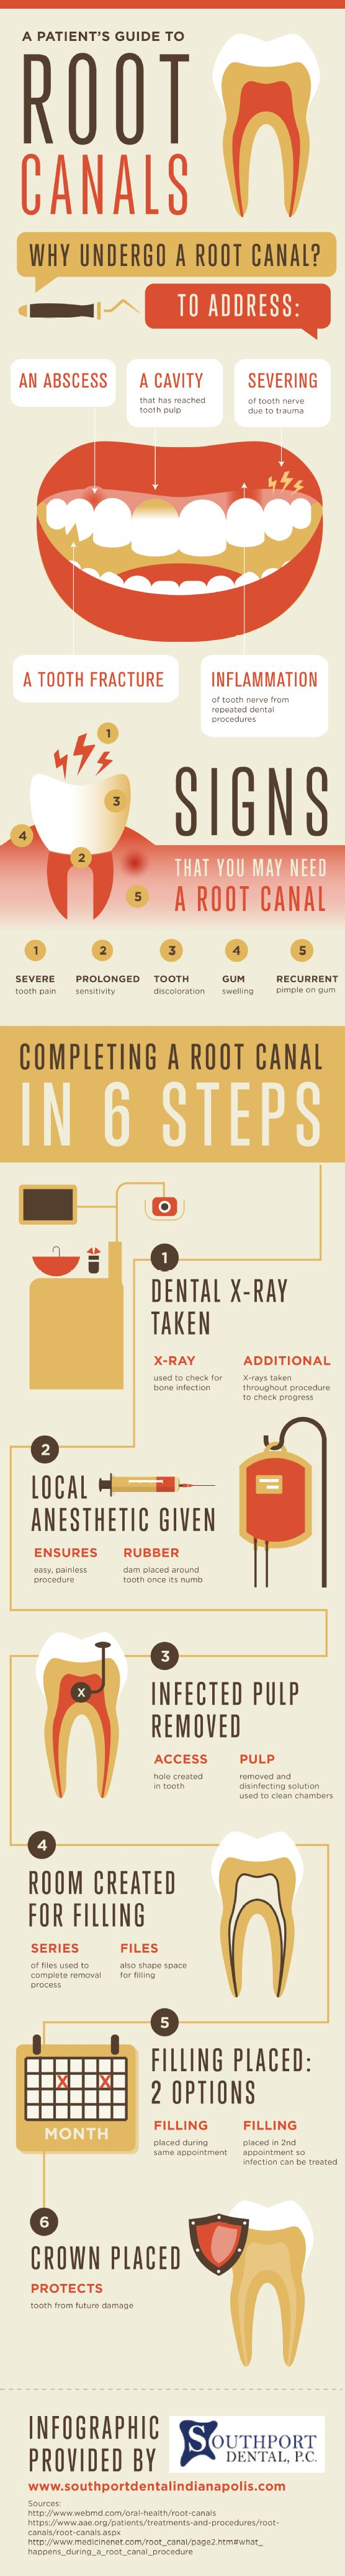 If a tooth's nerve is inflamed after repeated dental procedures, root canal treatment may be necessary to provide relief. THIS IS EVERYTHING.